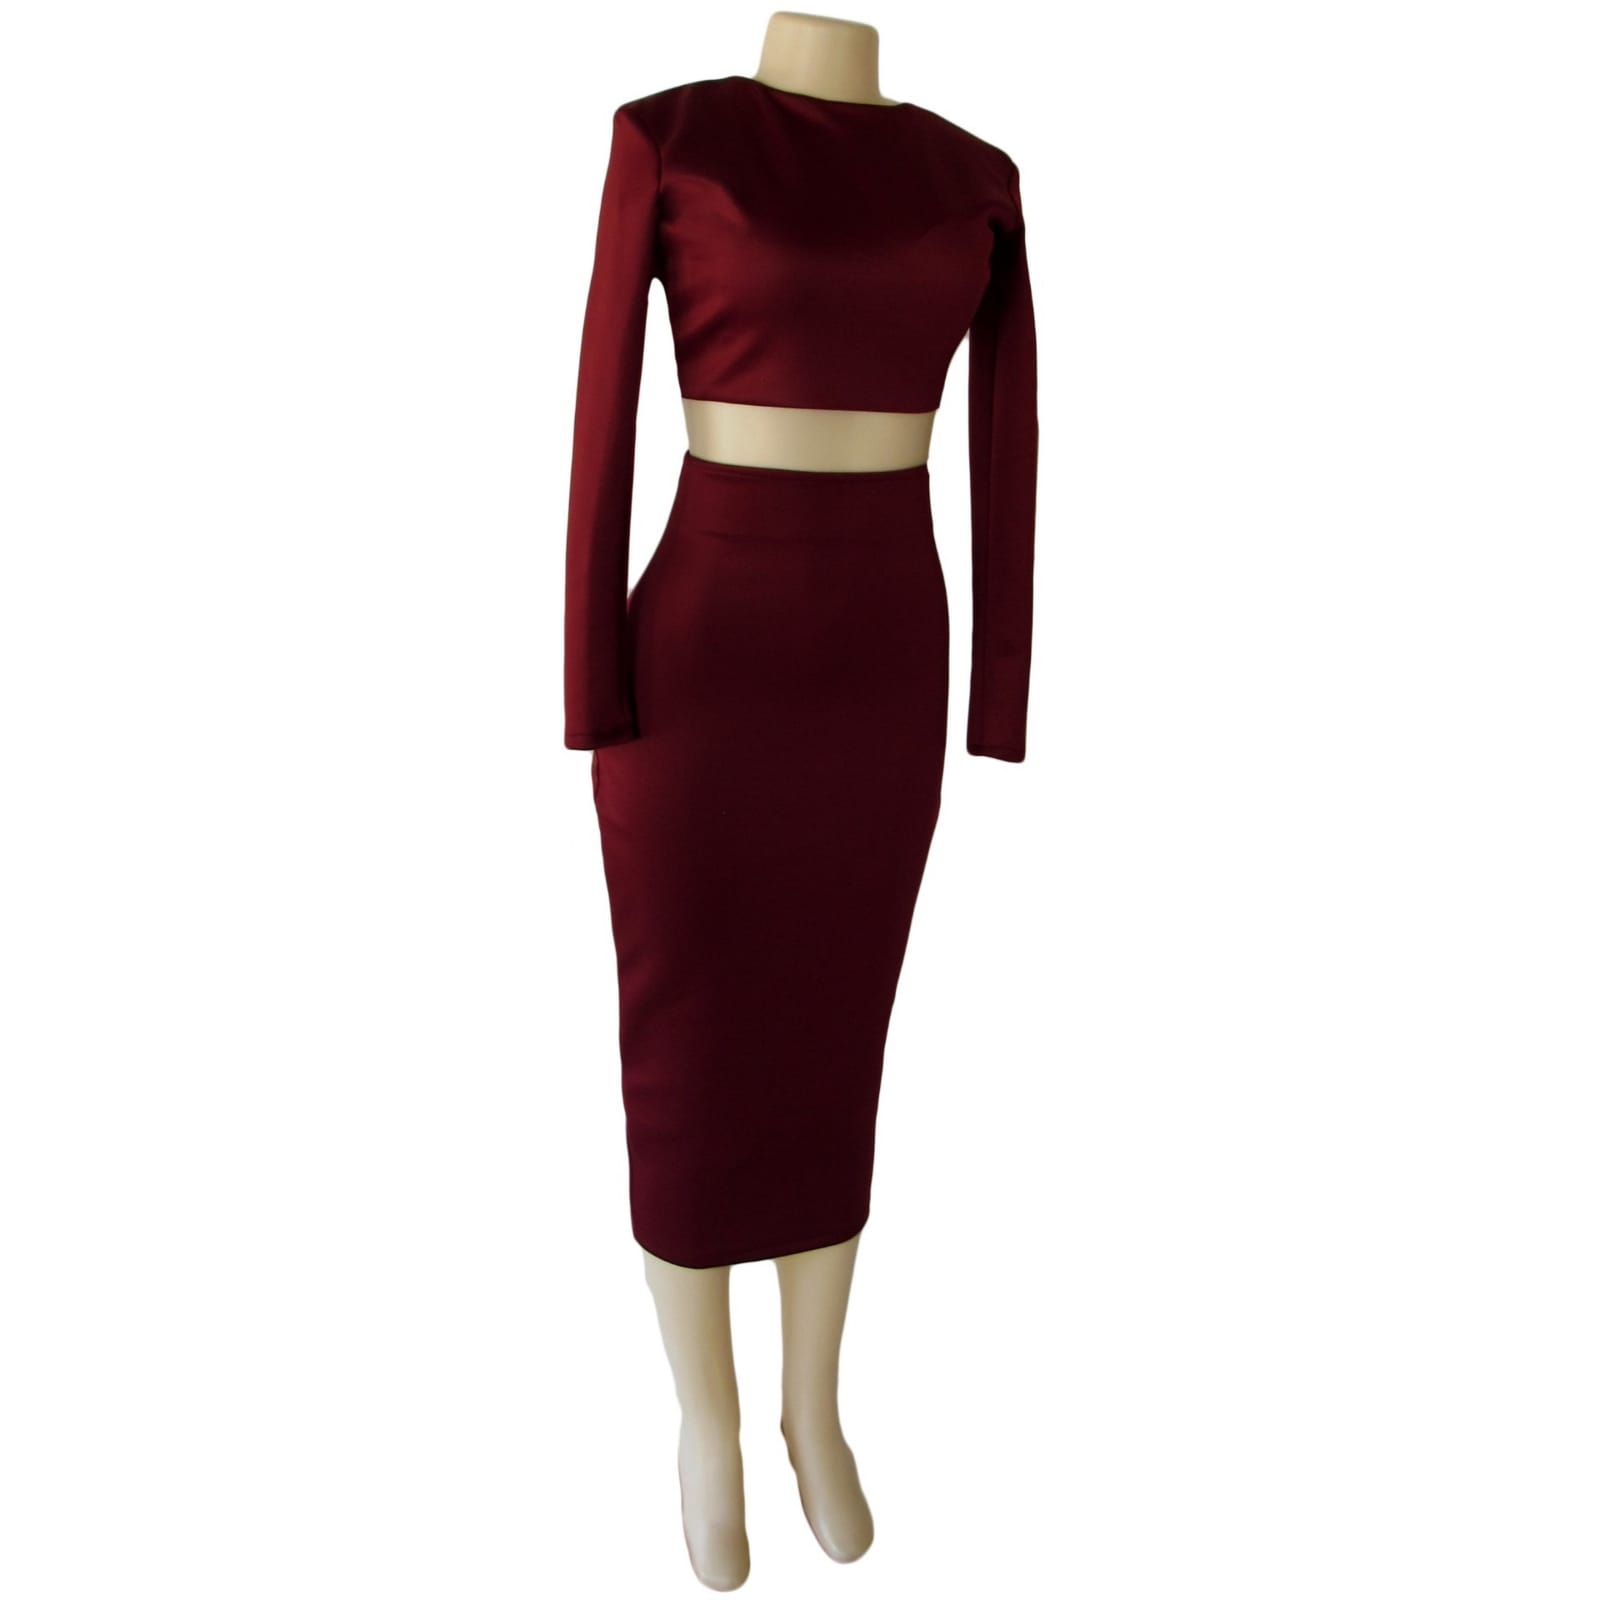 2 piece maroon tight fitting smart casual outfit 7 2 piece maroon tight fitting smart casual outfit. With a crop top, long sleeves and 3/4 length tight fitting skirt